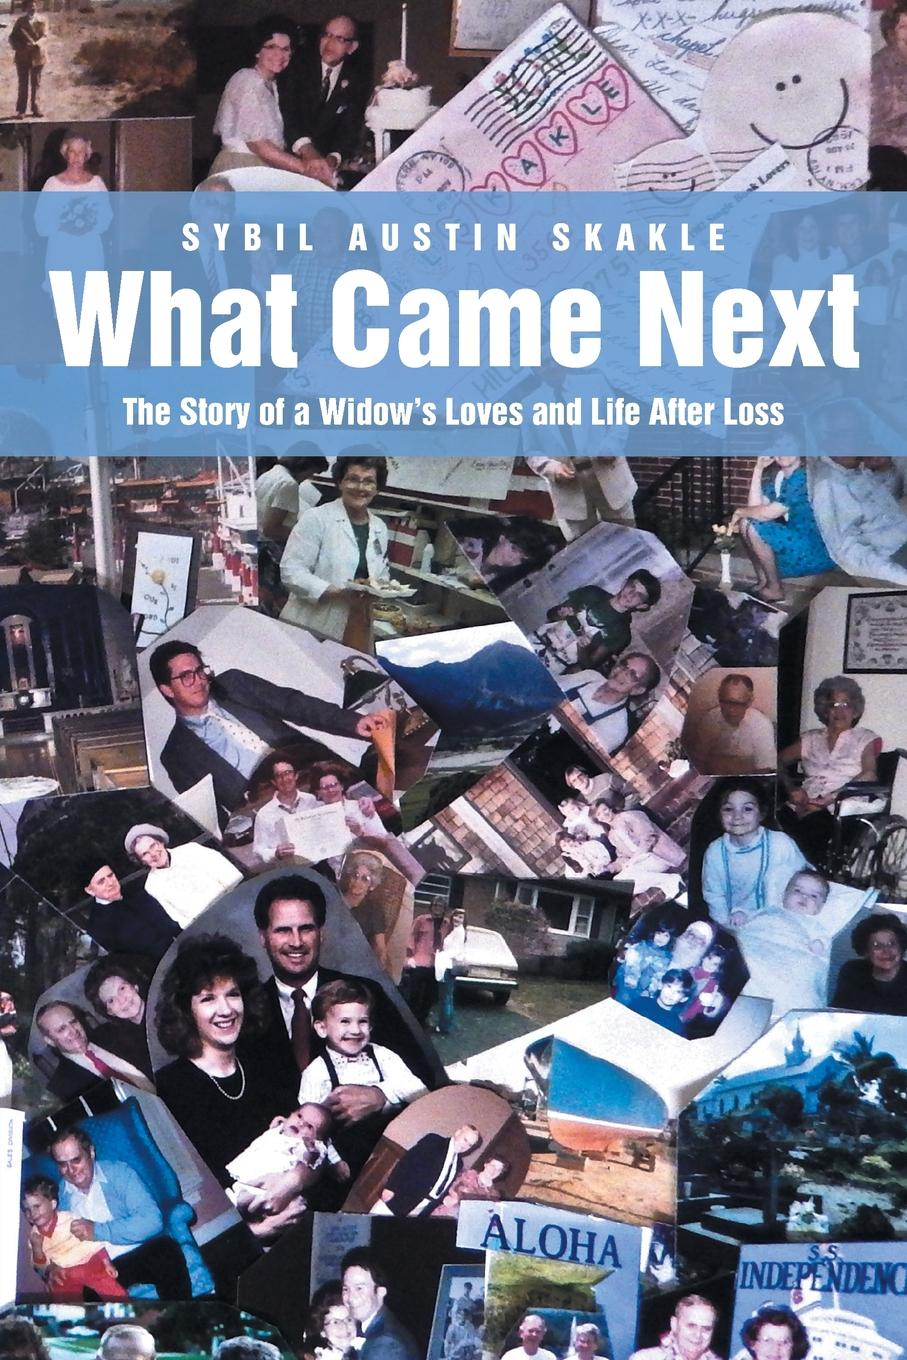 Sybil Austin Skakle What Came Next. The Story of a Widow's Loves and Life After Loss